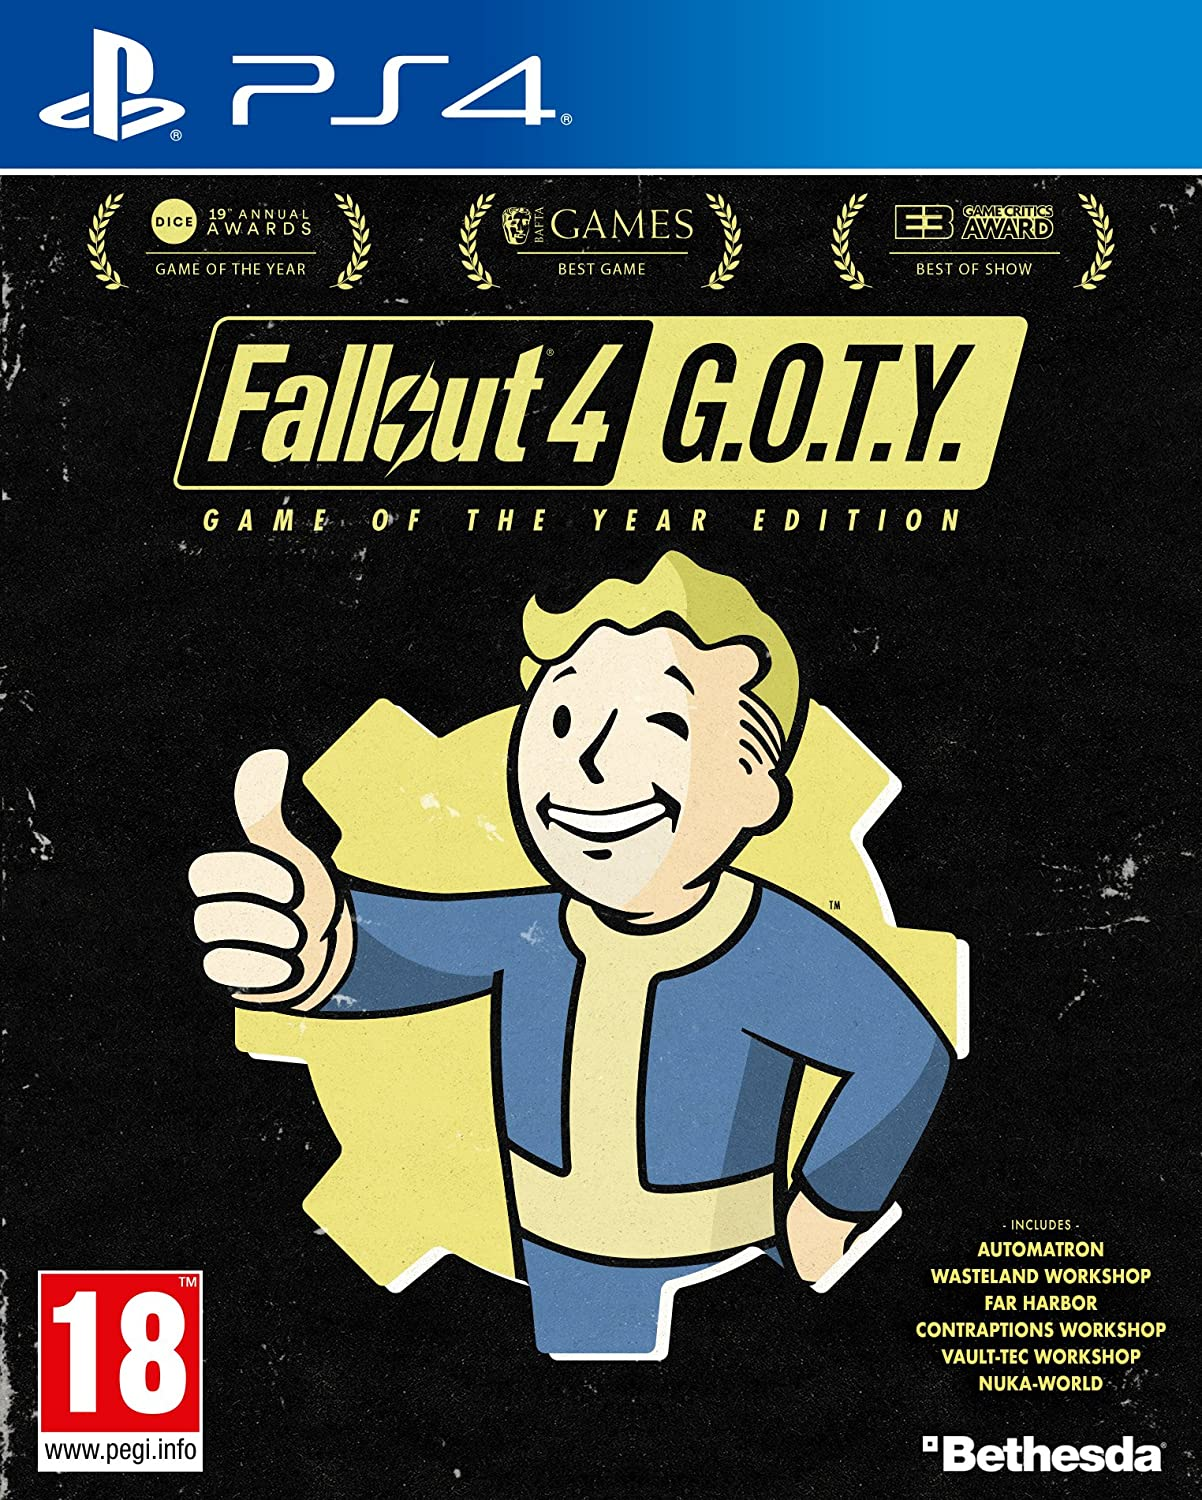 Fallout 4 Goty (PS4): Amazon co uk: PC & Video Games